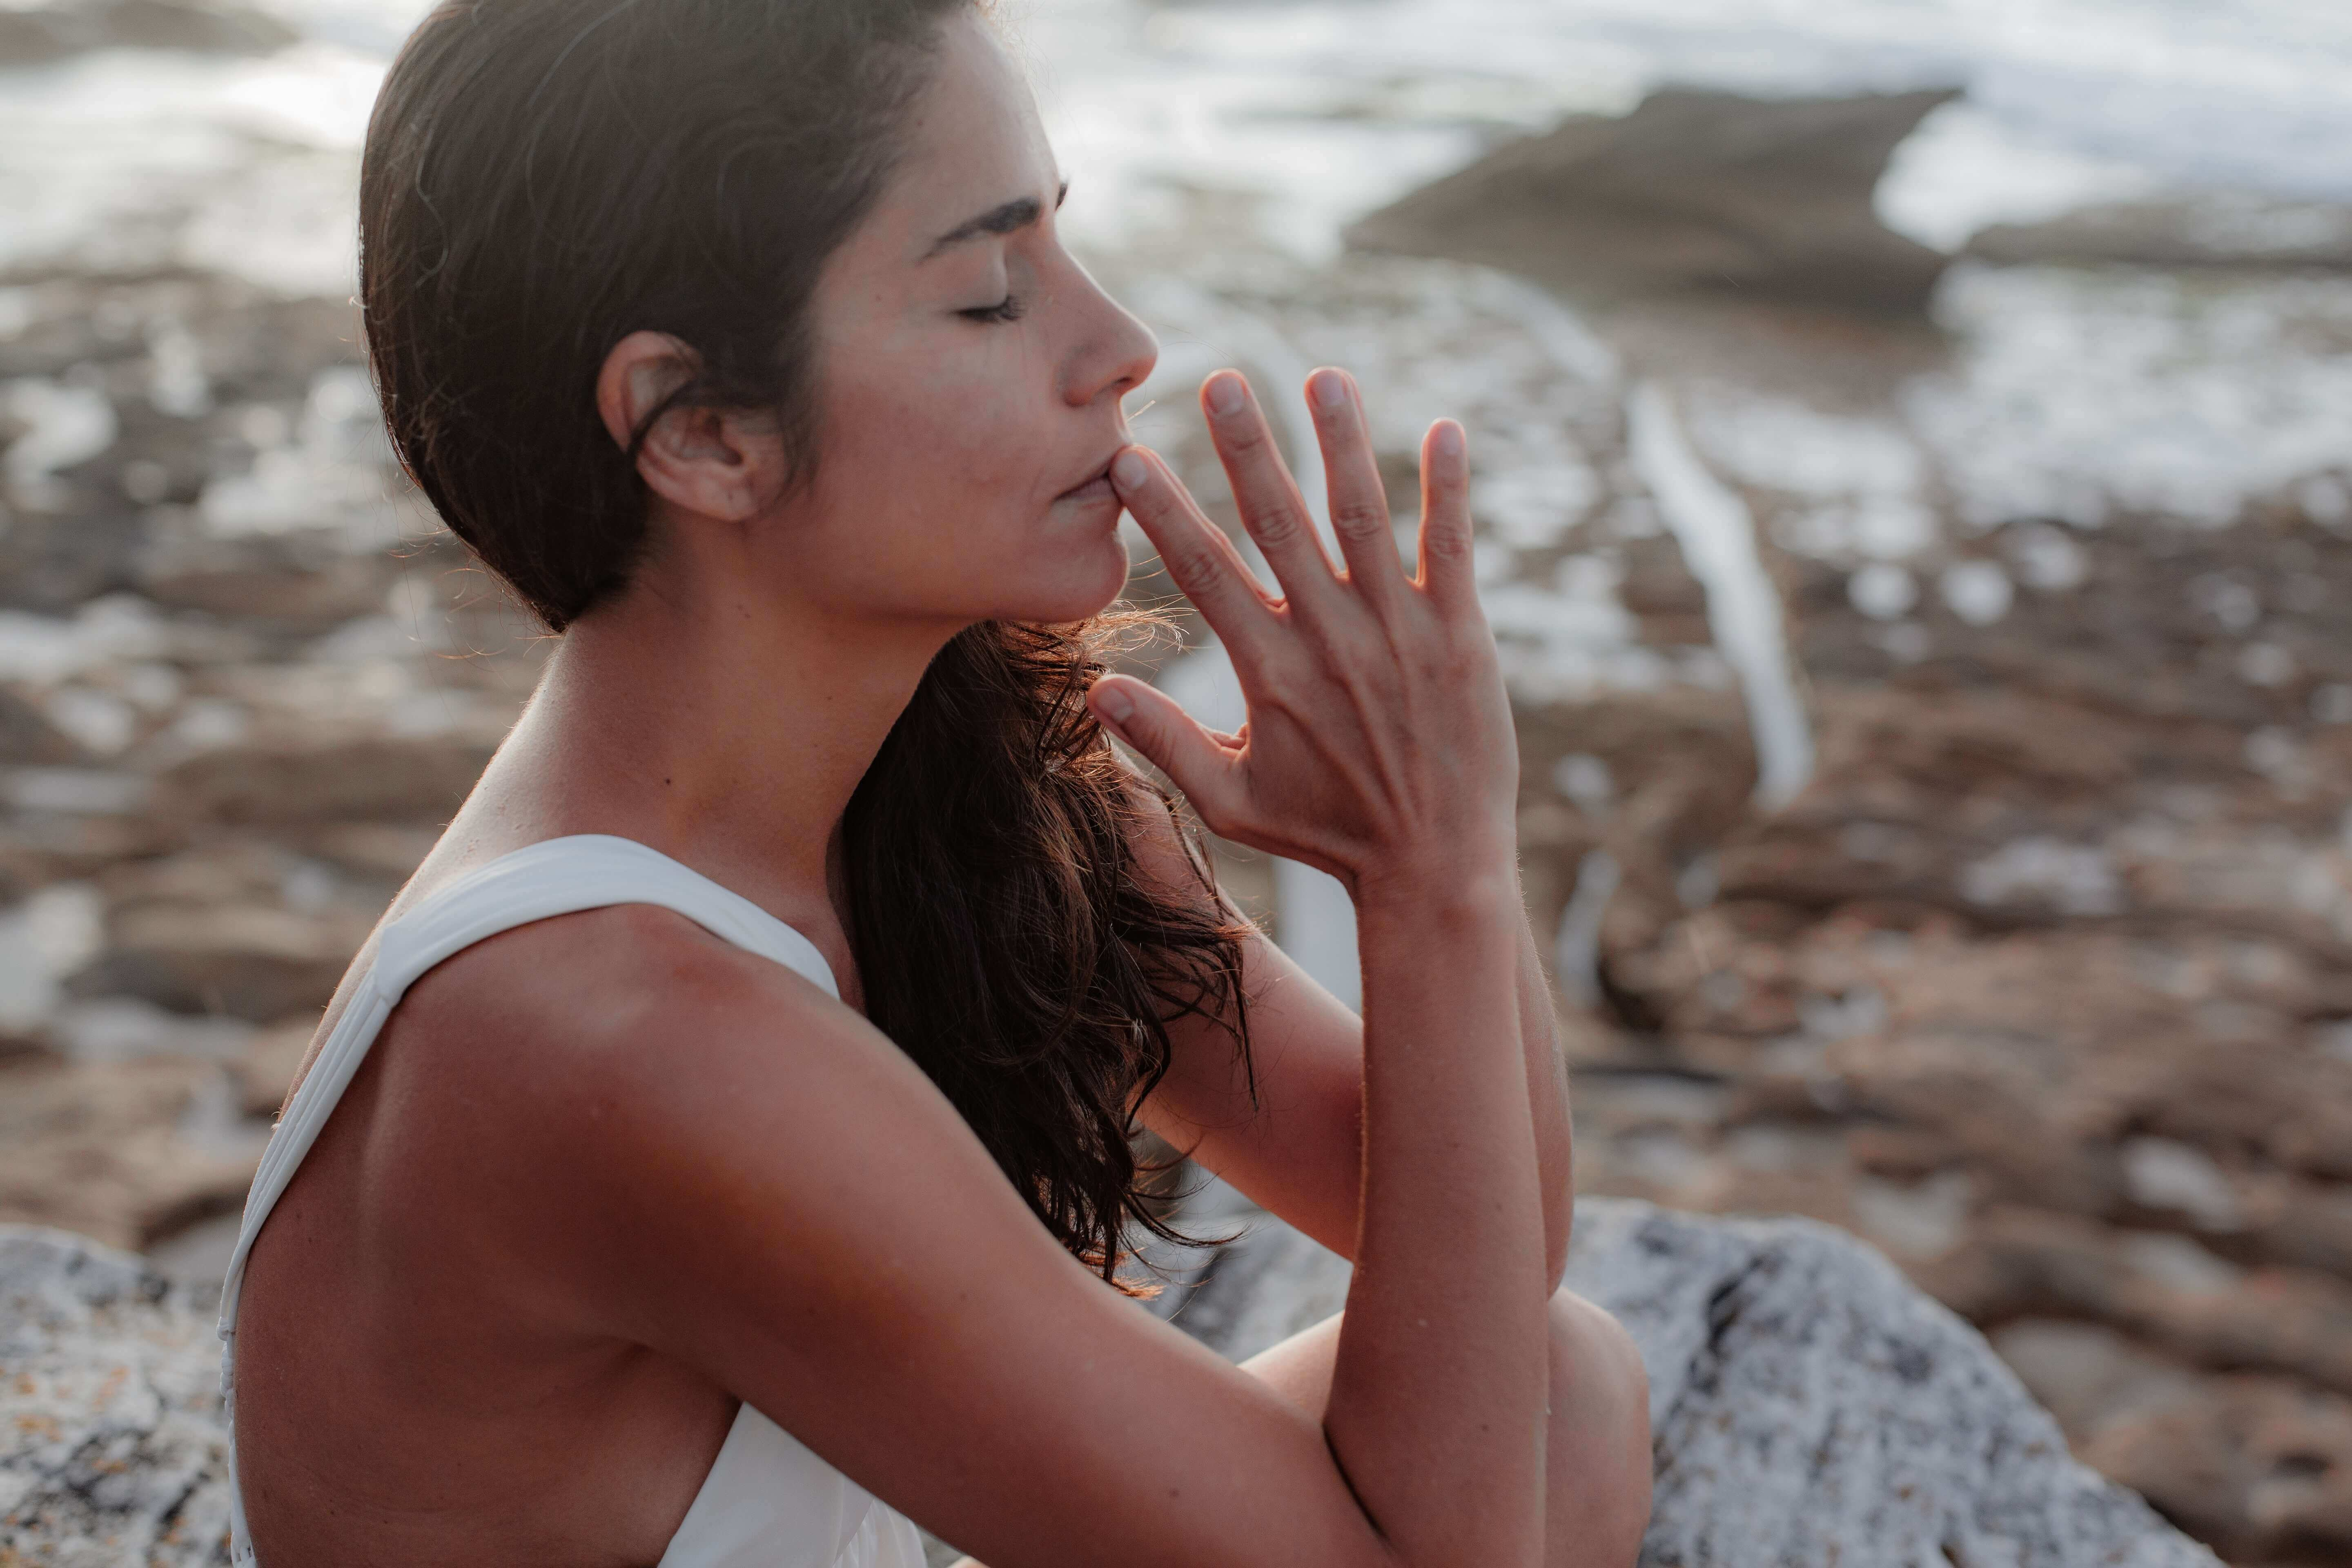 woman wearing white tank top meditating